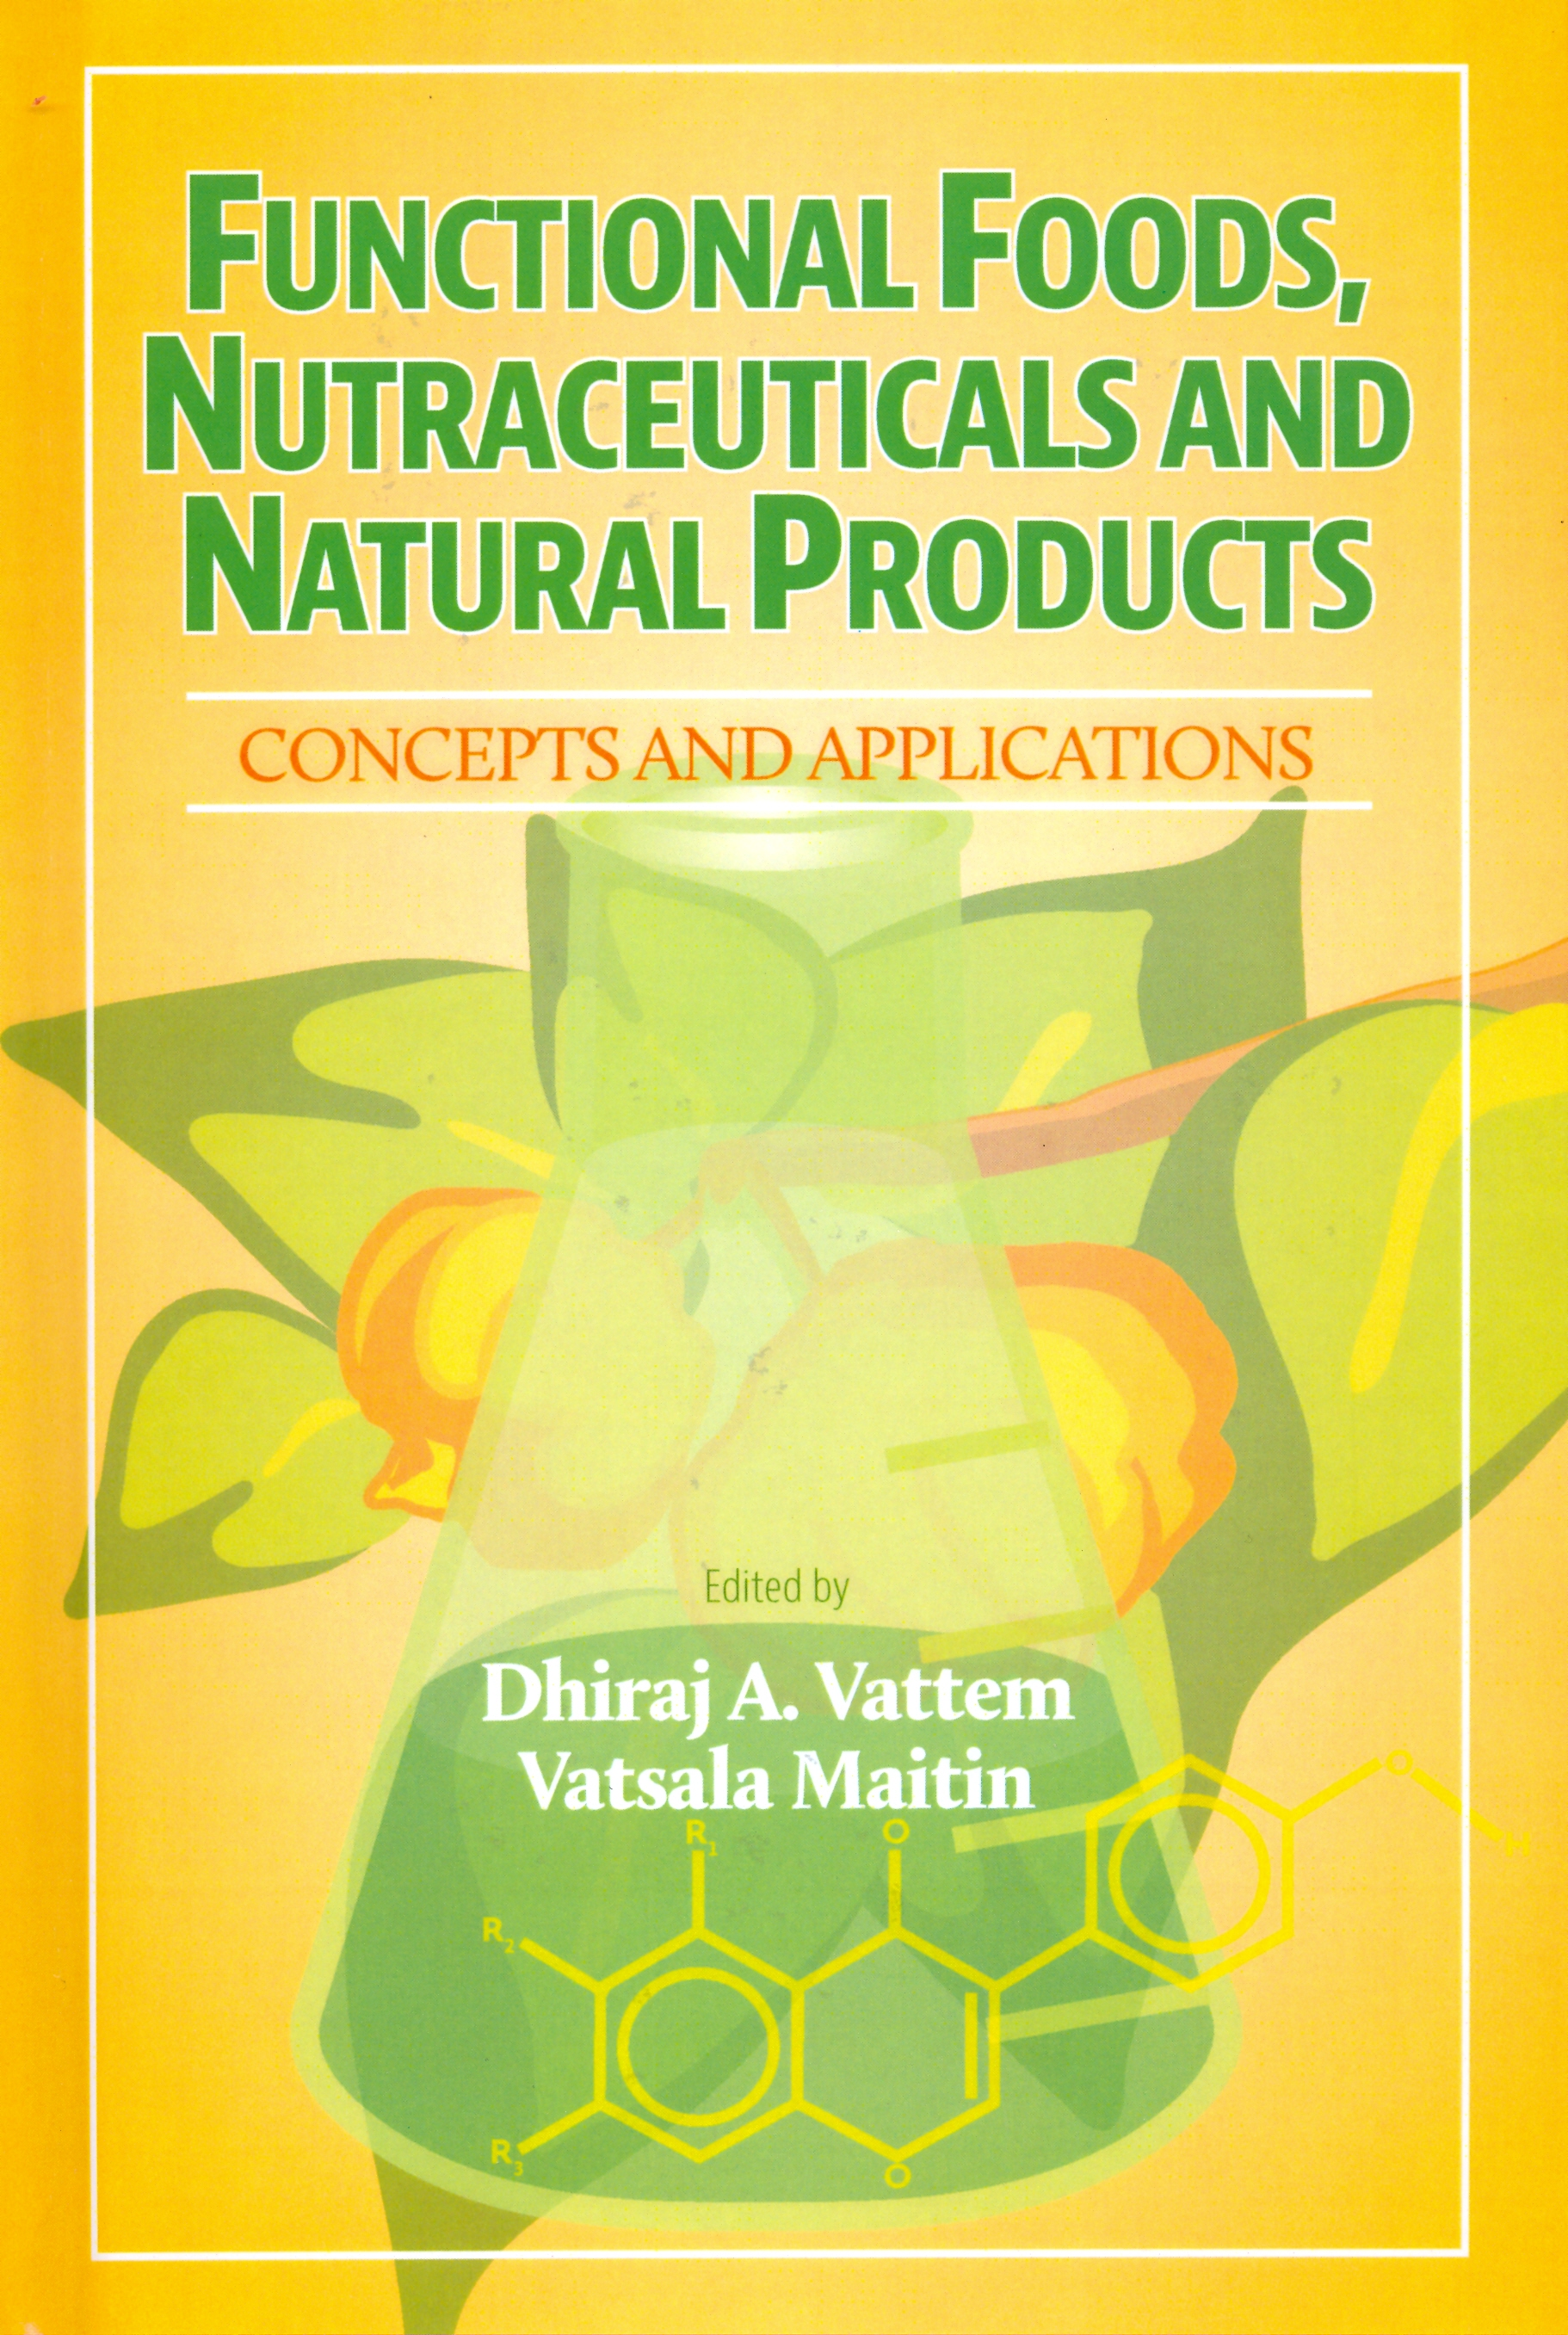 Functional Foods And Natural Products Destech Publishing